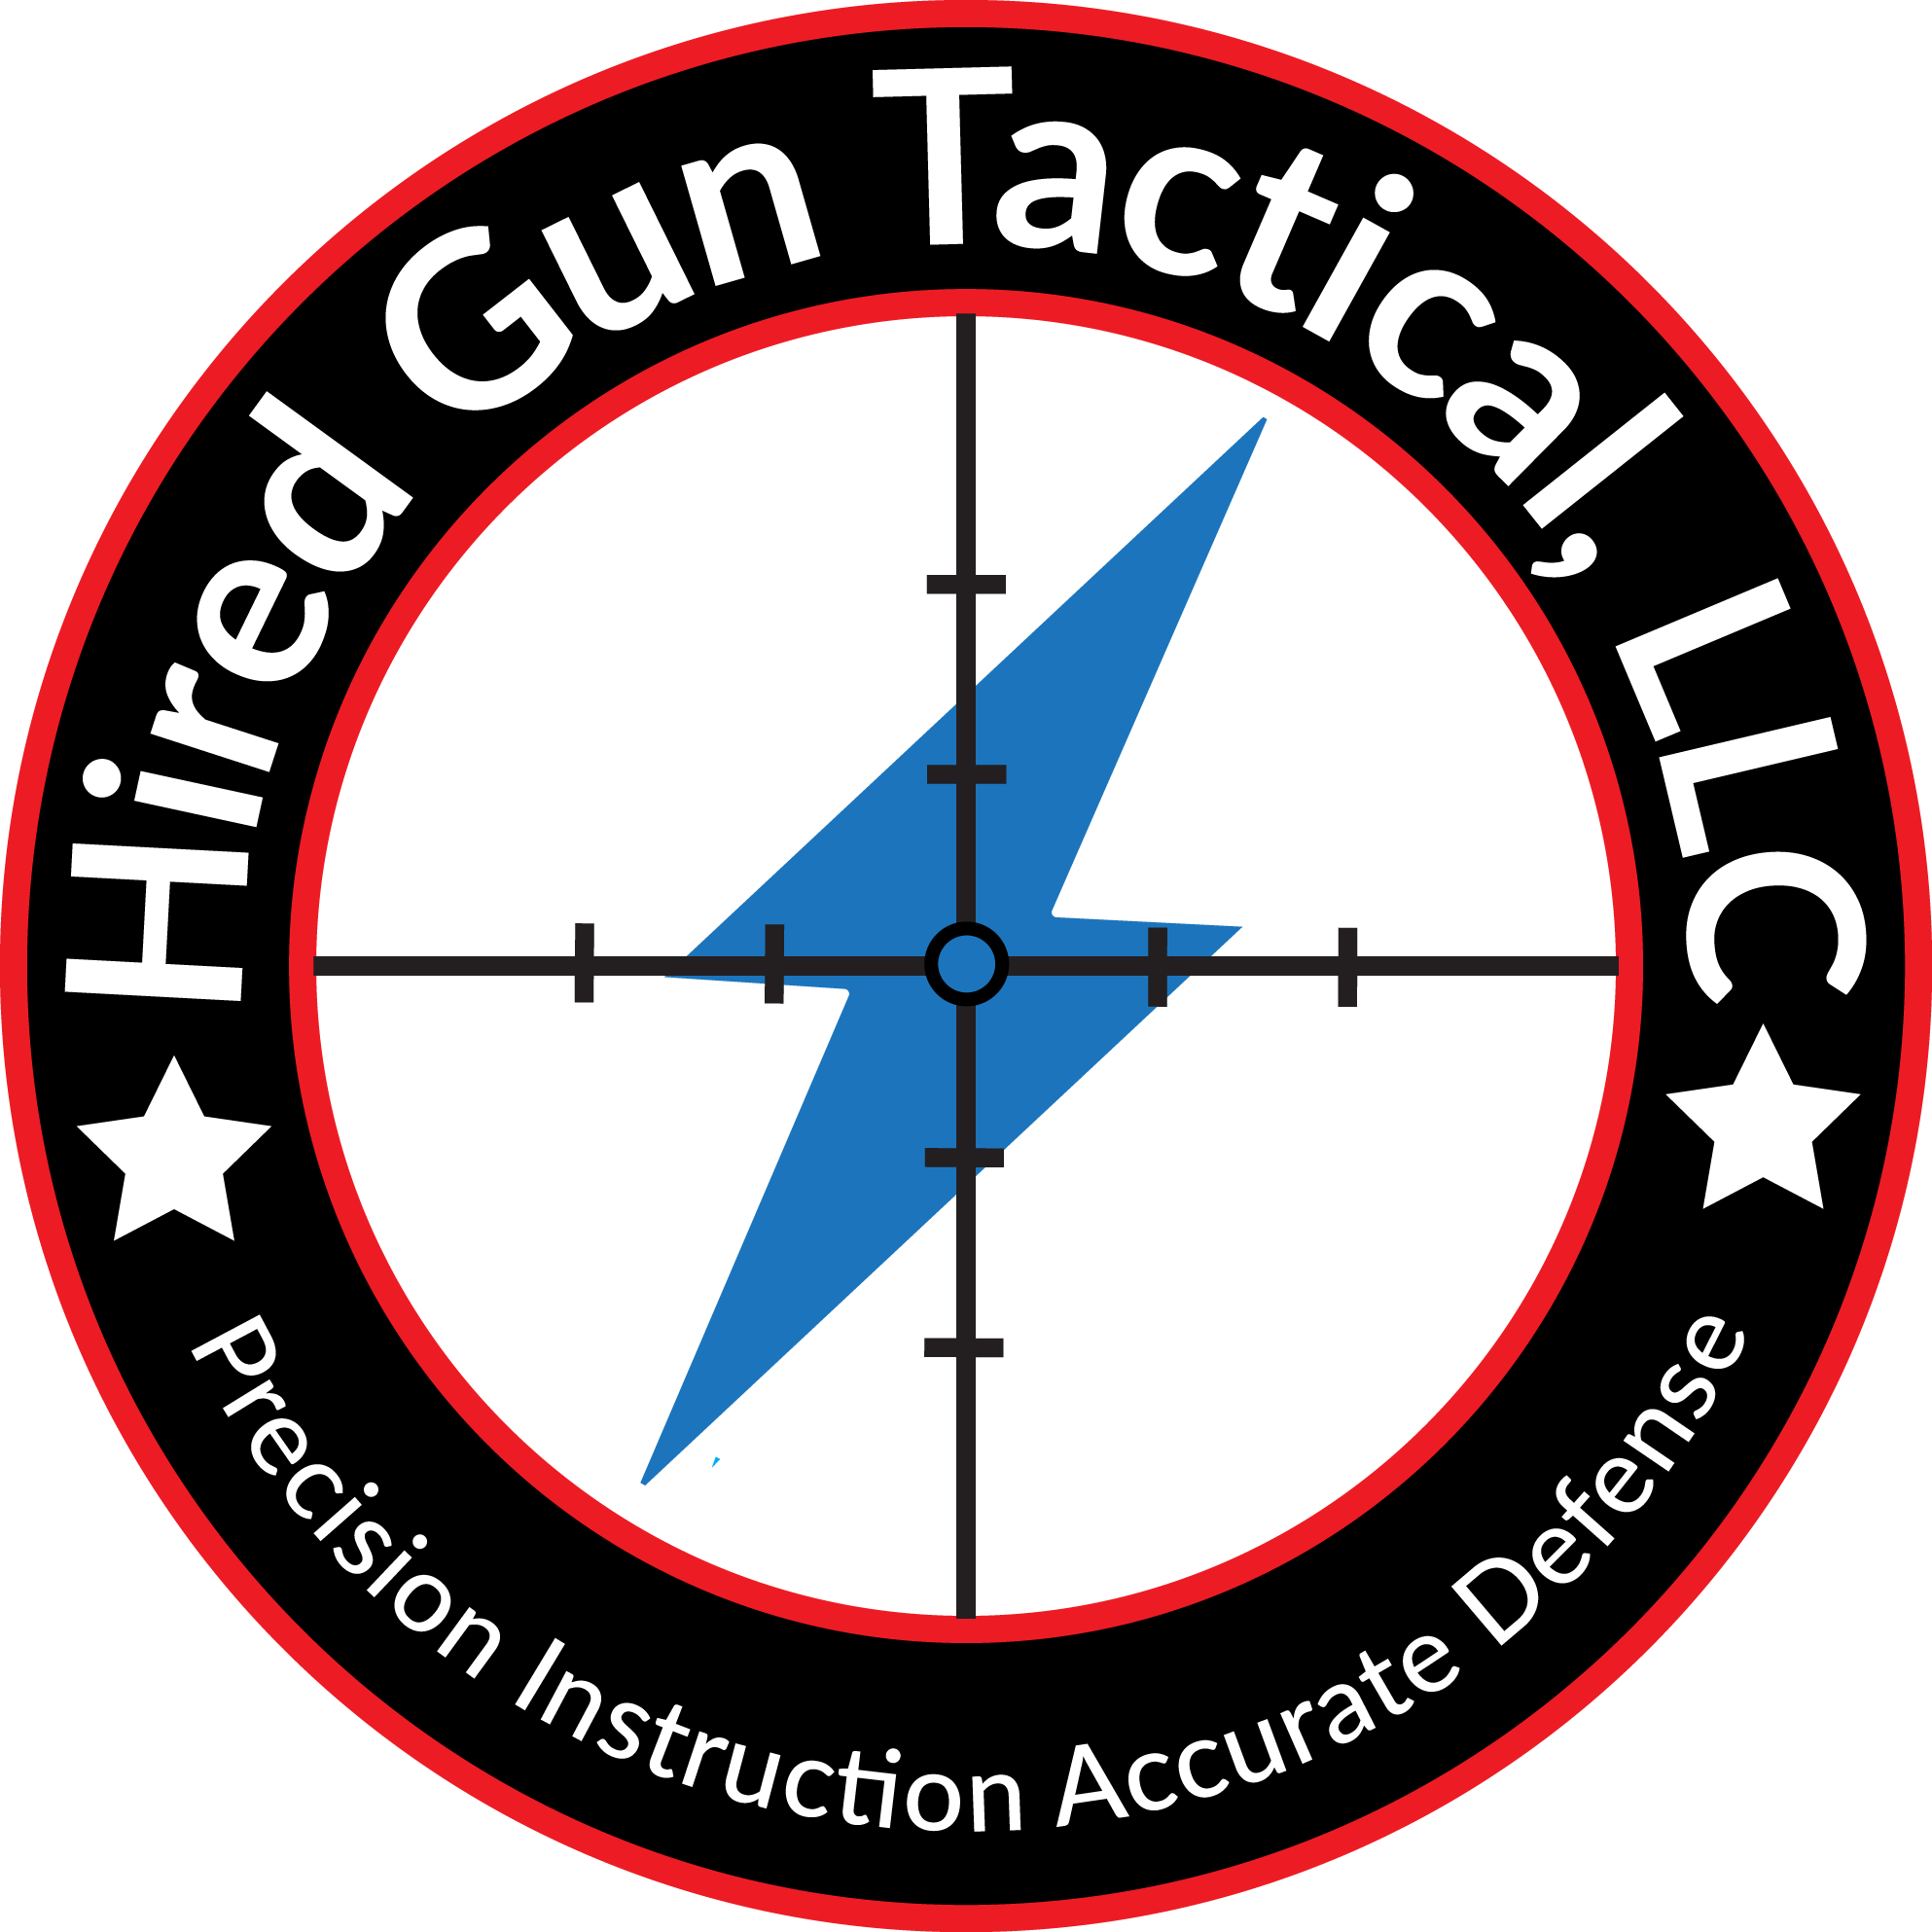 Hired-Gun-Tactical.com